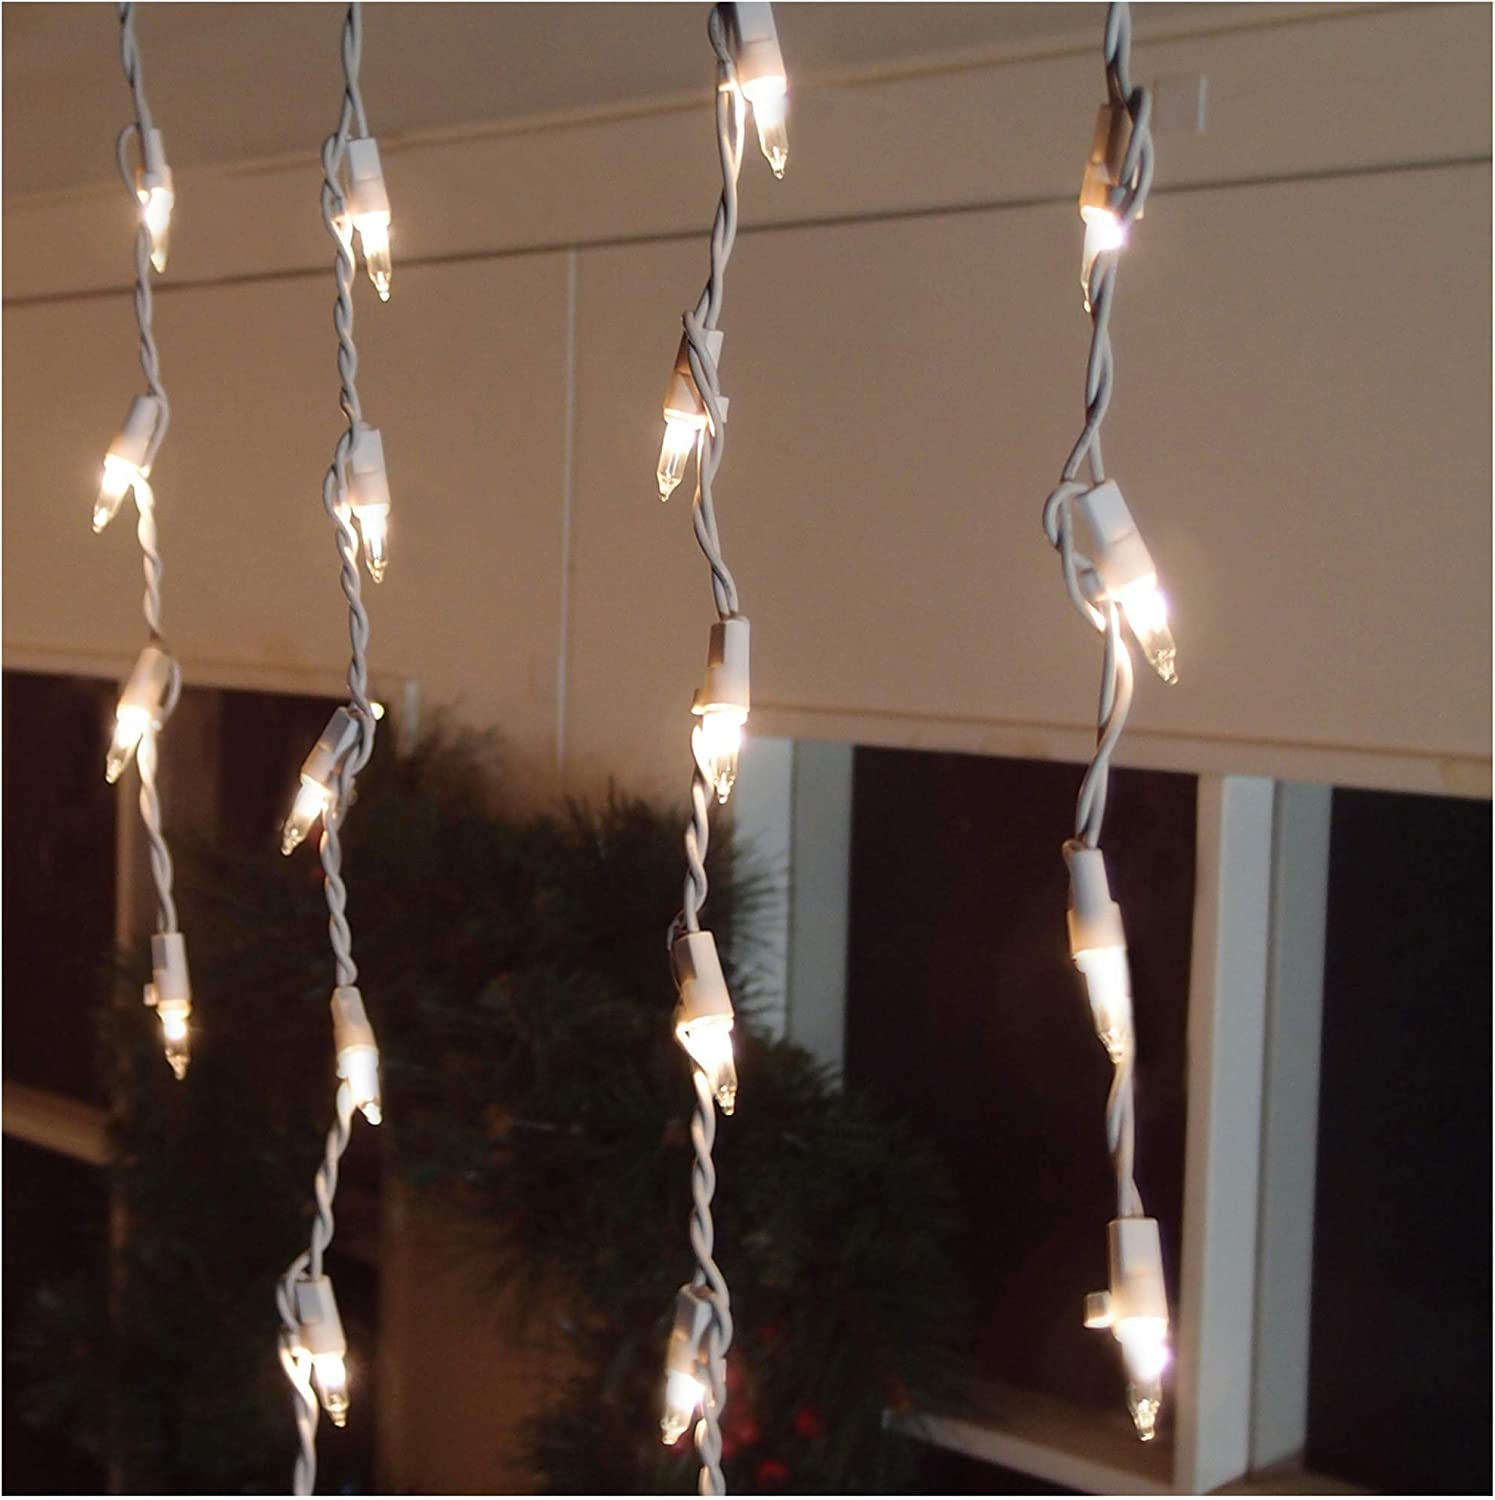 Brite Star 300ct Icicle Light, Clear Color, 300 Count